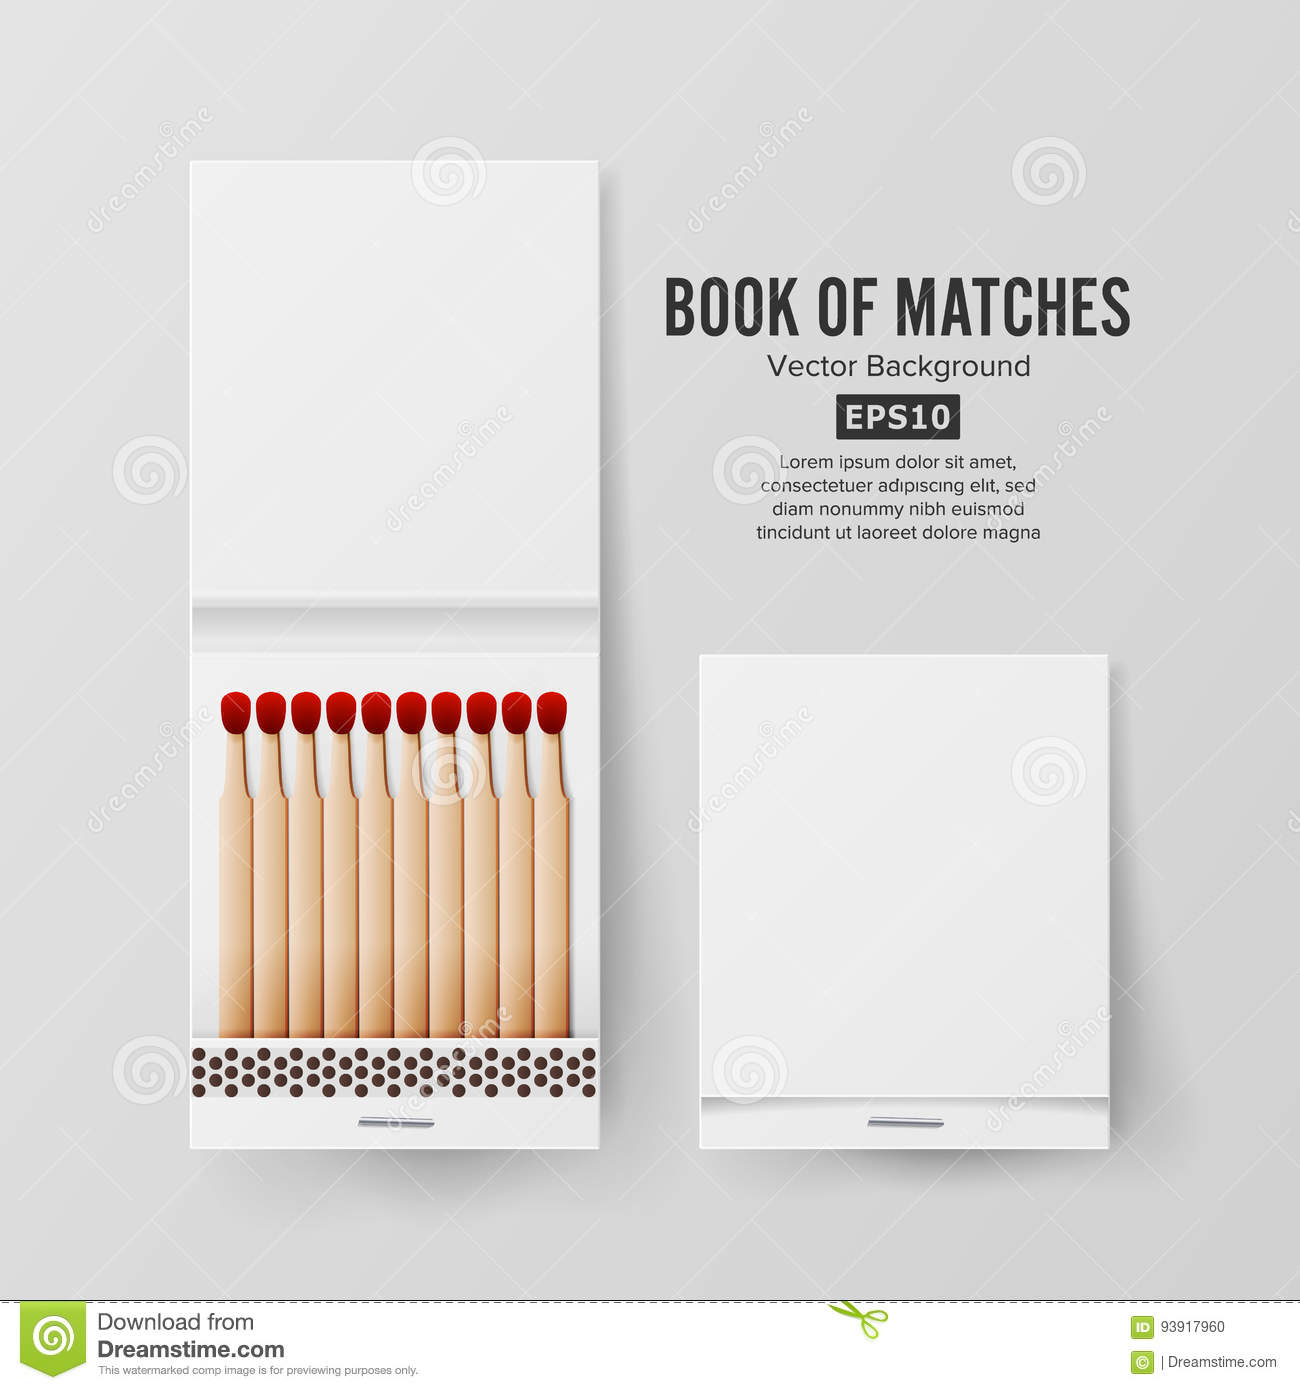 Book of matches sign up